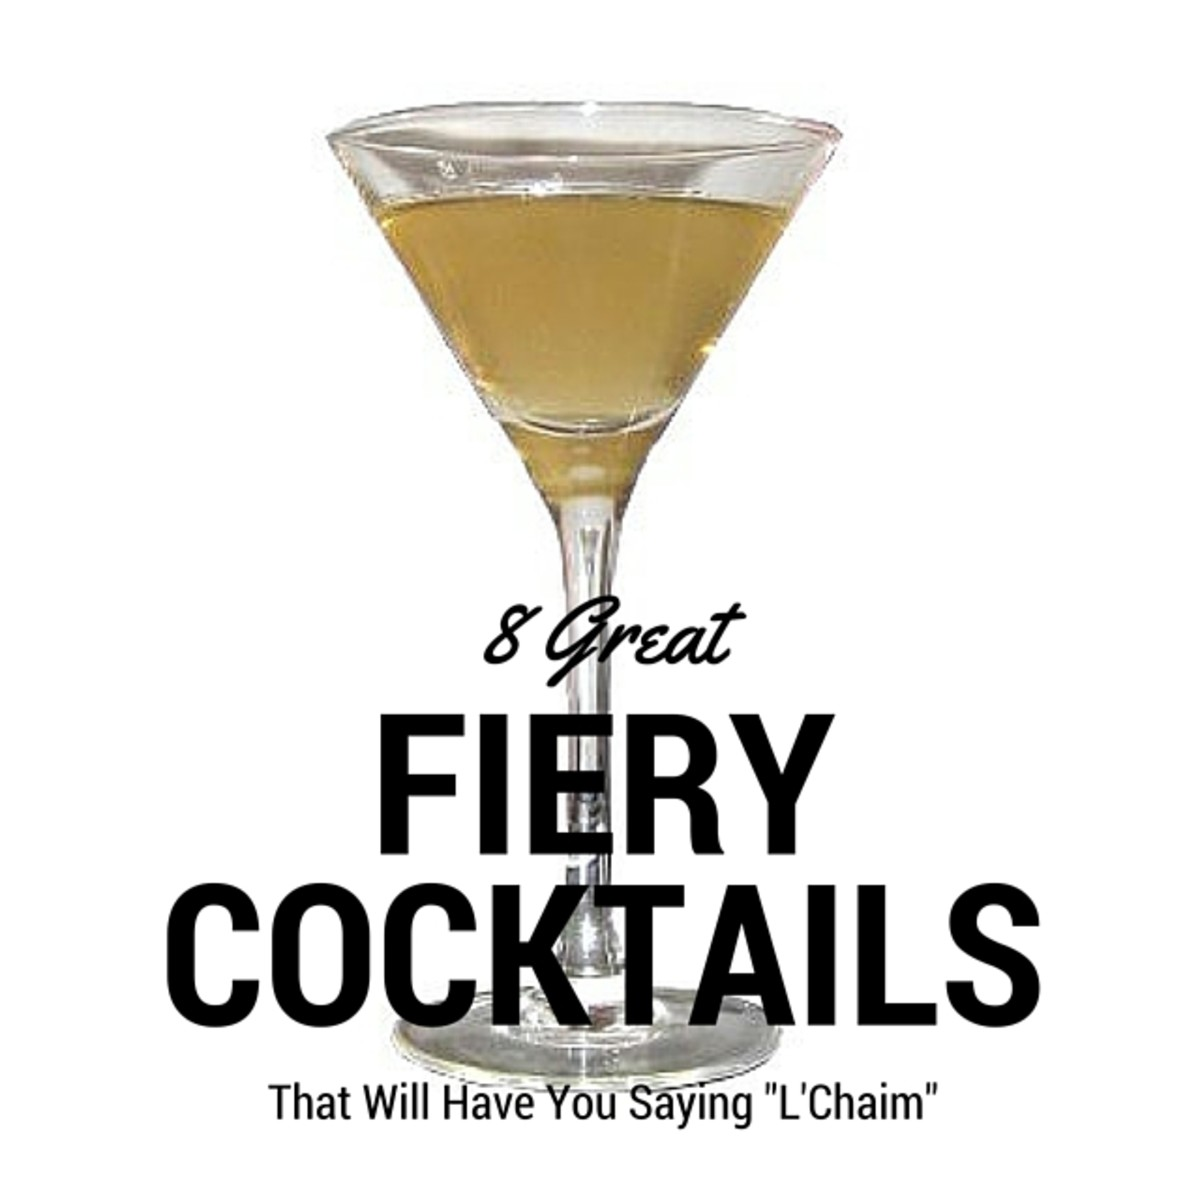 "8 Great Fiery Cocktails That Will Have You Saying ""L'Chaim""!"